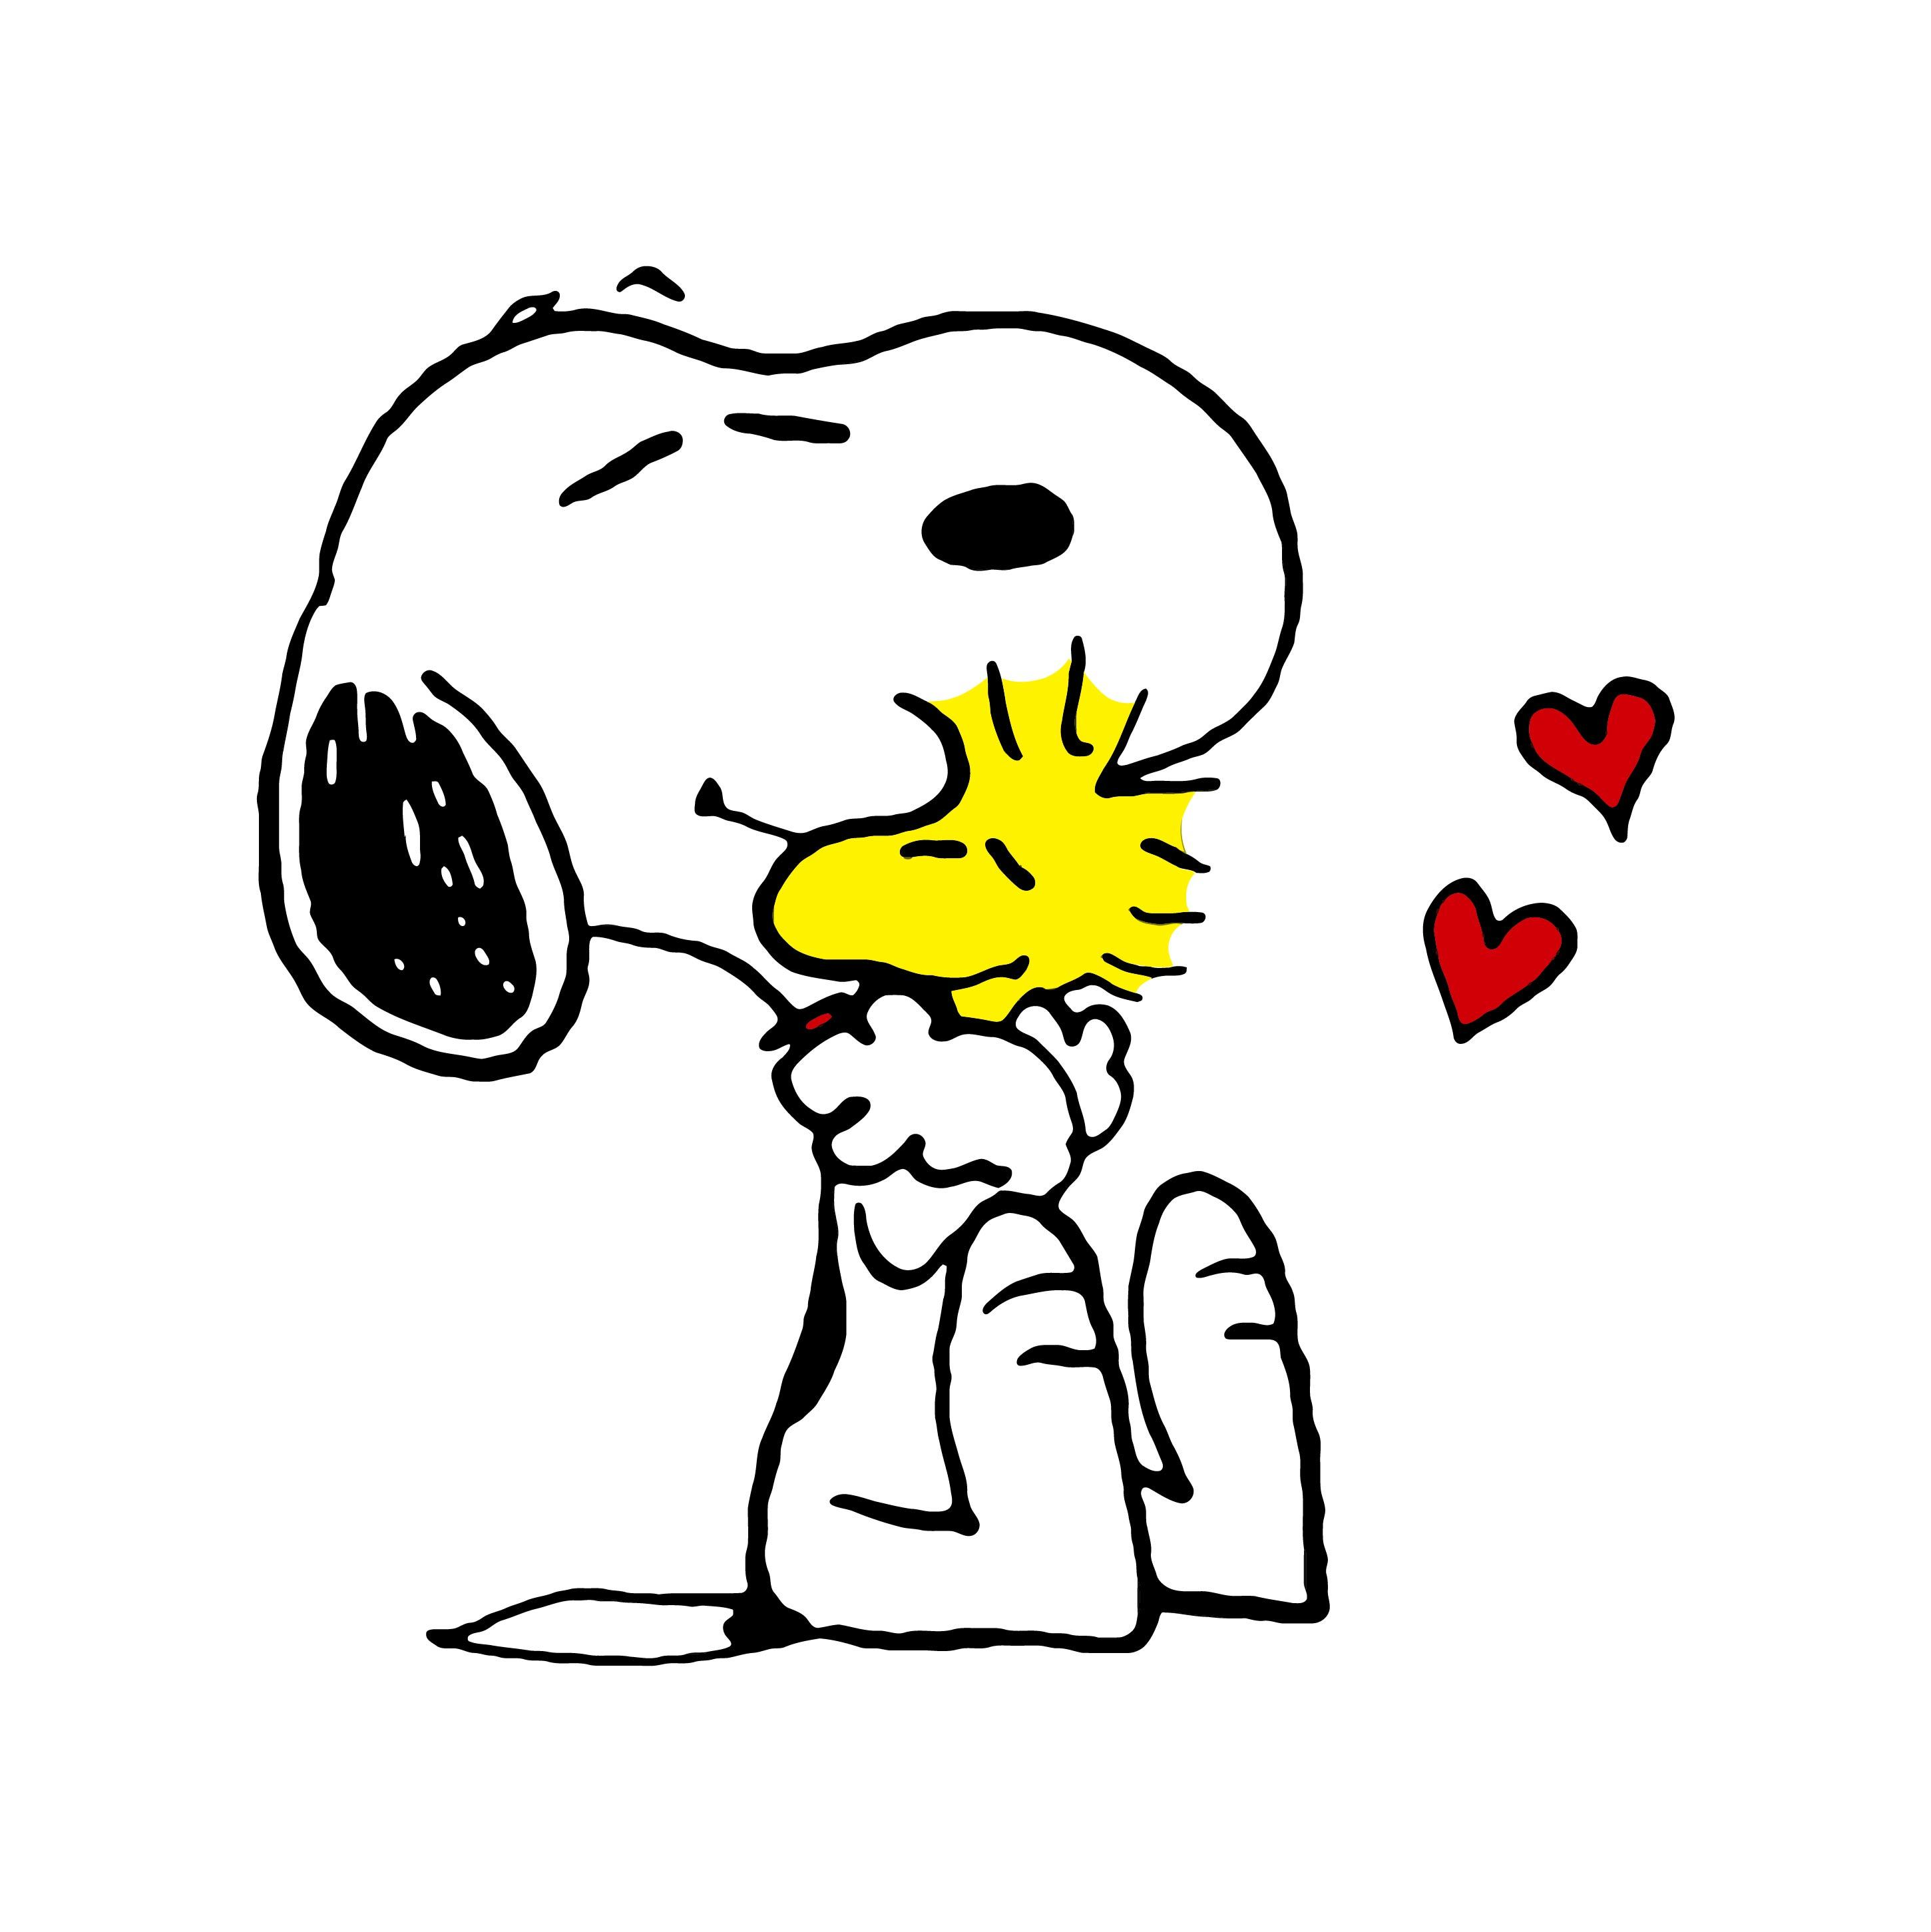 Snoopy And Woodstock Love 2 Graphics Design